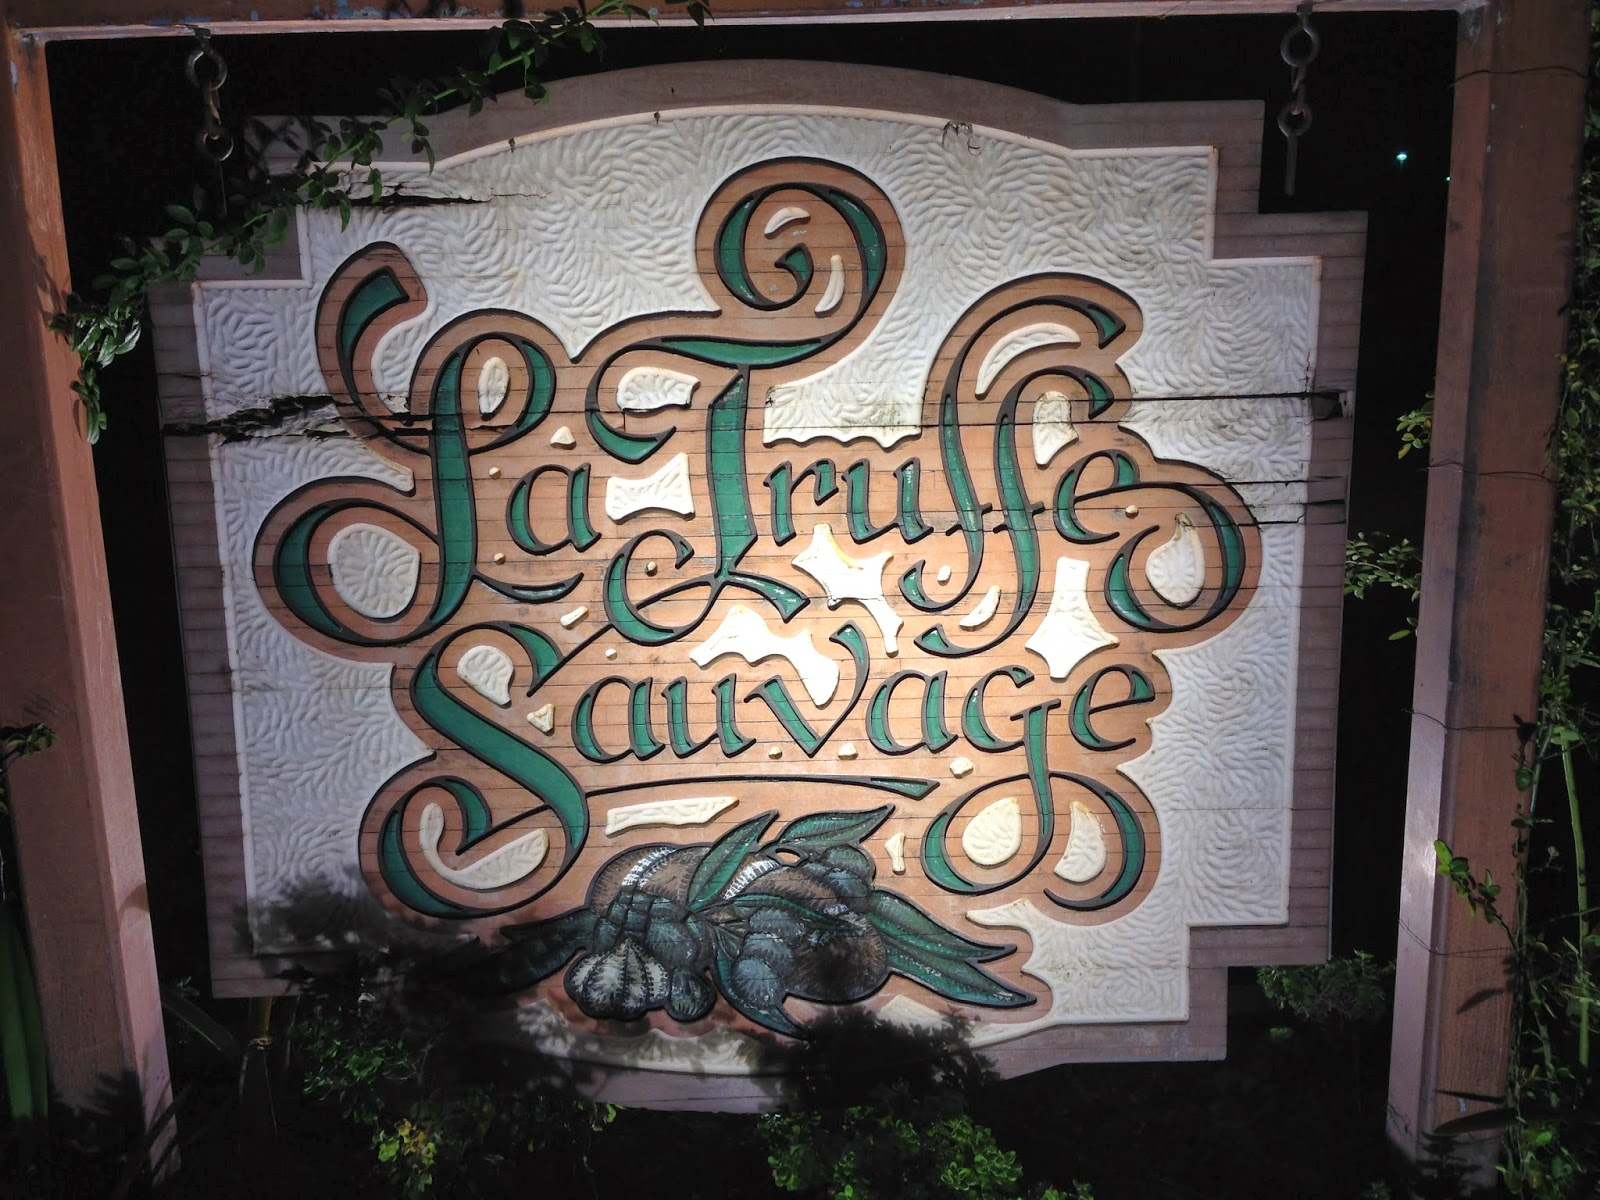 La Truffe Sauvage in Lake Charles, LA